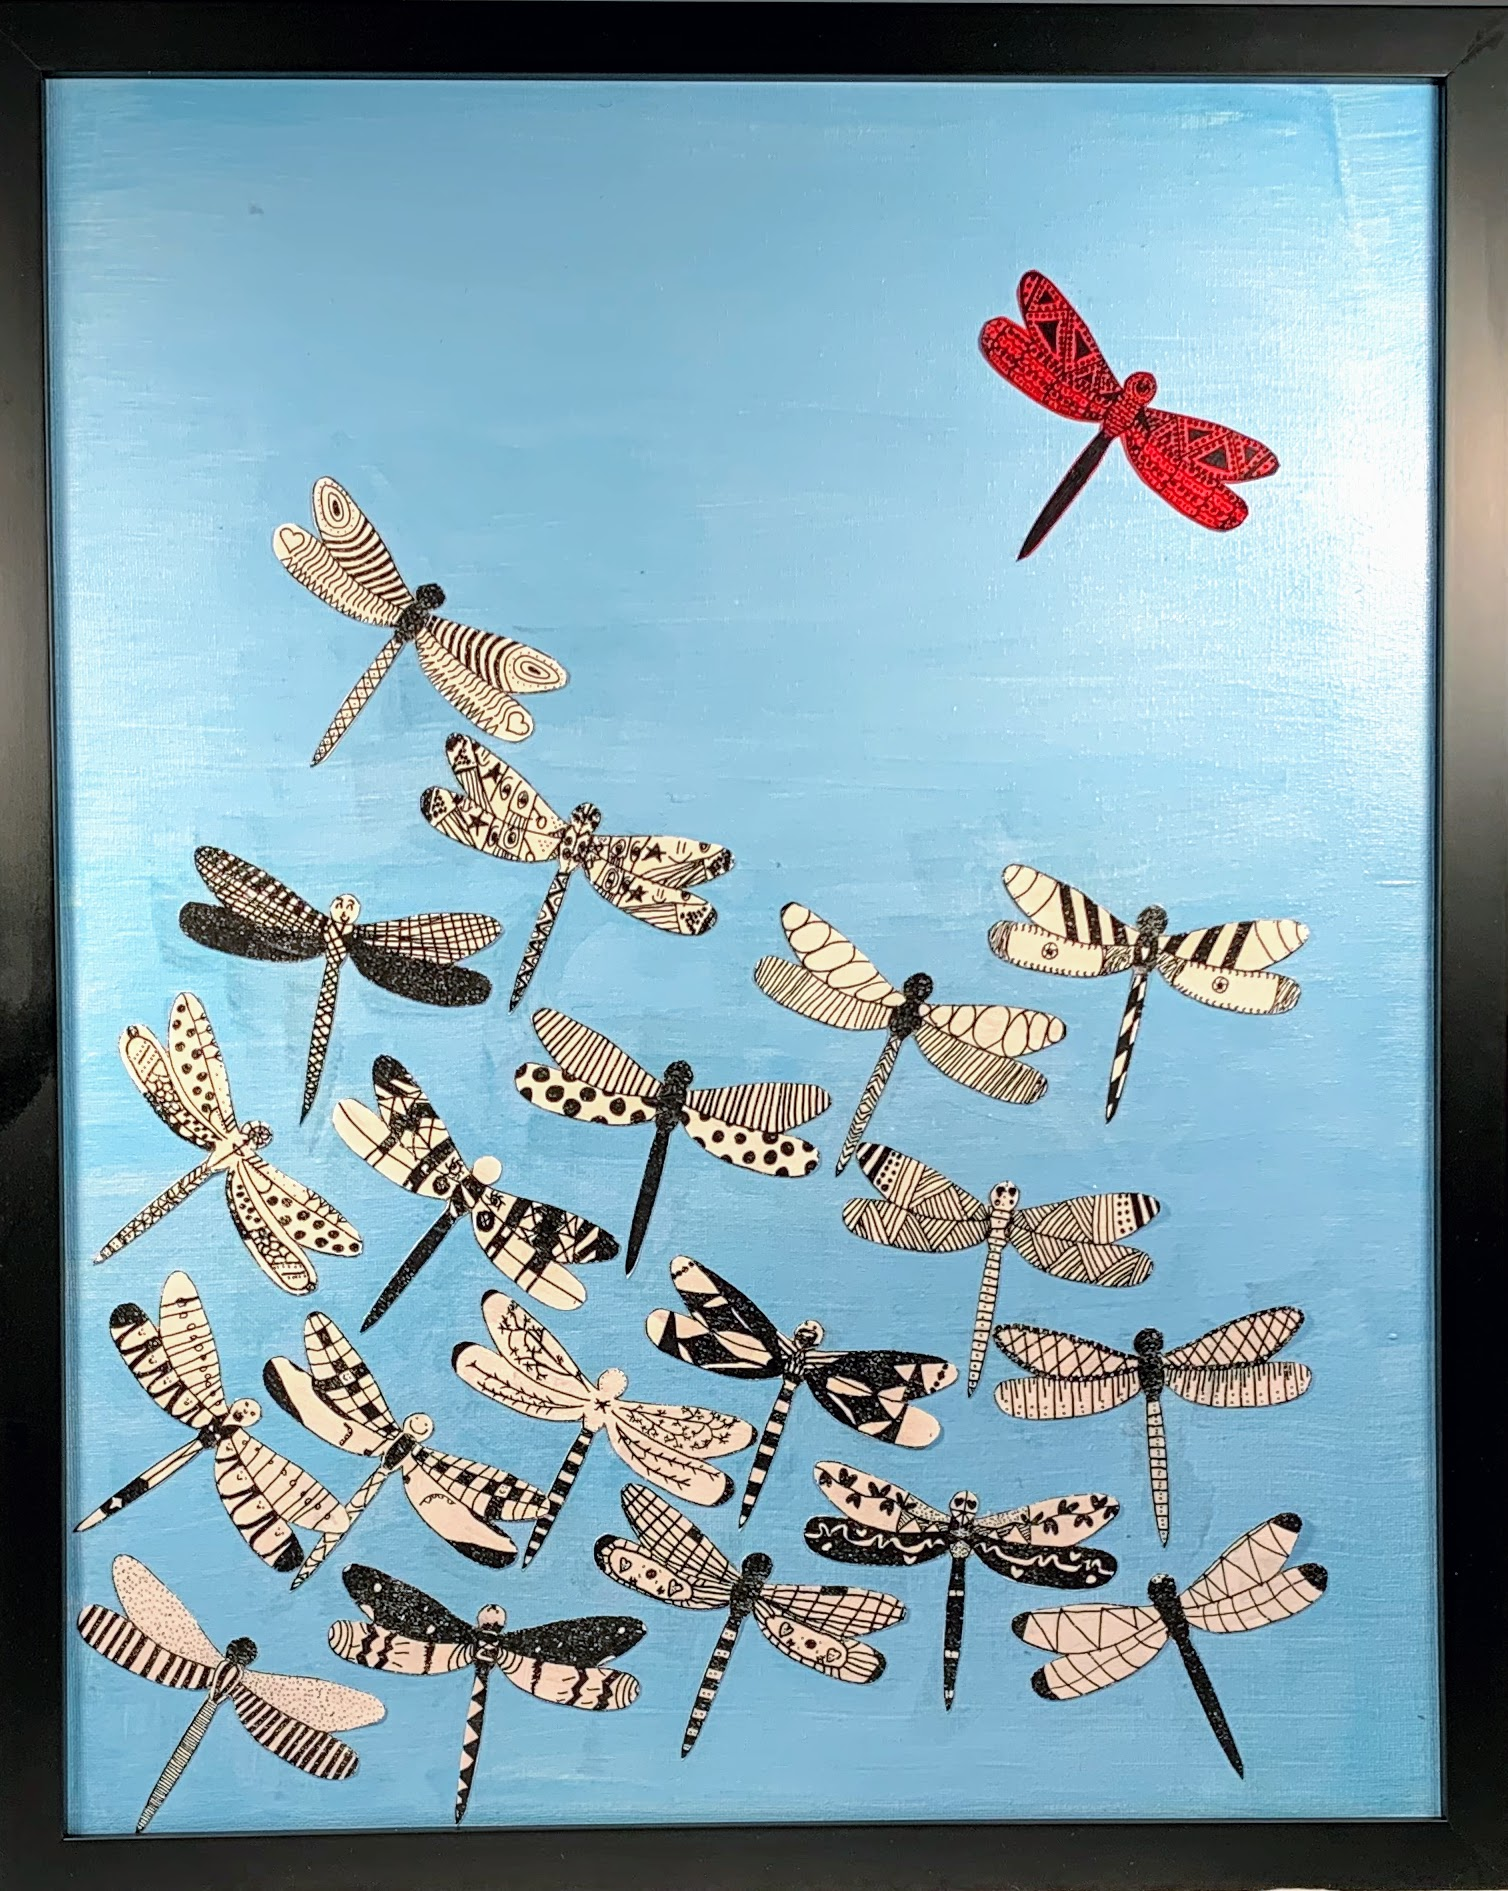 RICHARDS 4TH GRADE: Dragonflies - Hand decorated dragonflies take flight in these one of a kind framed canvas pieces created by our fourth graders. We were only able to photograph one as they came to us from the framers wrapped up for safe-keeping. They will all be on display at the Bay Ball!